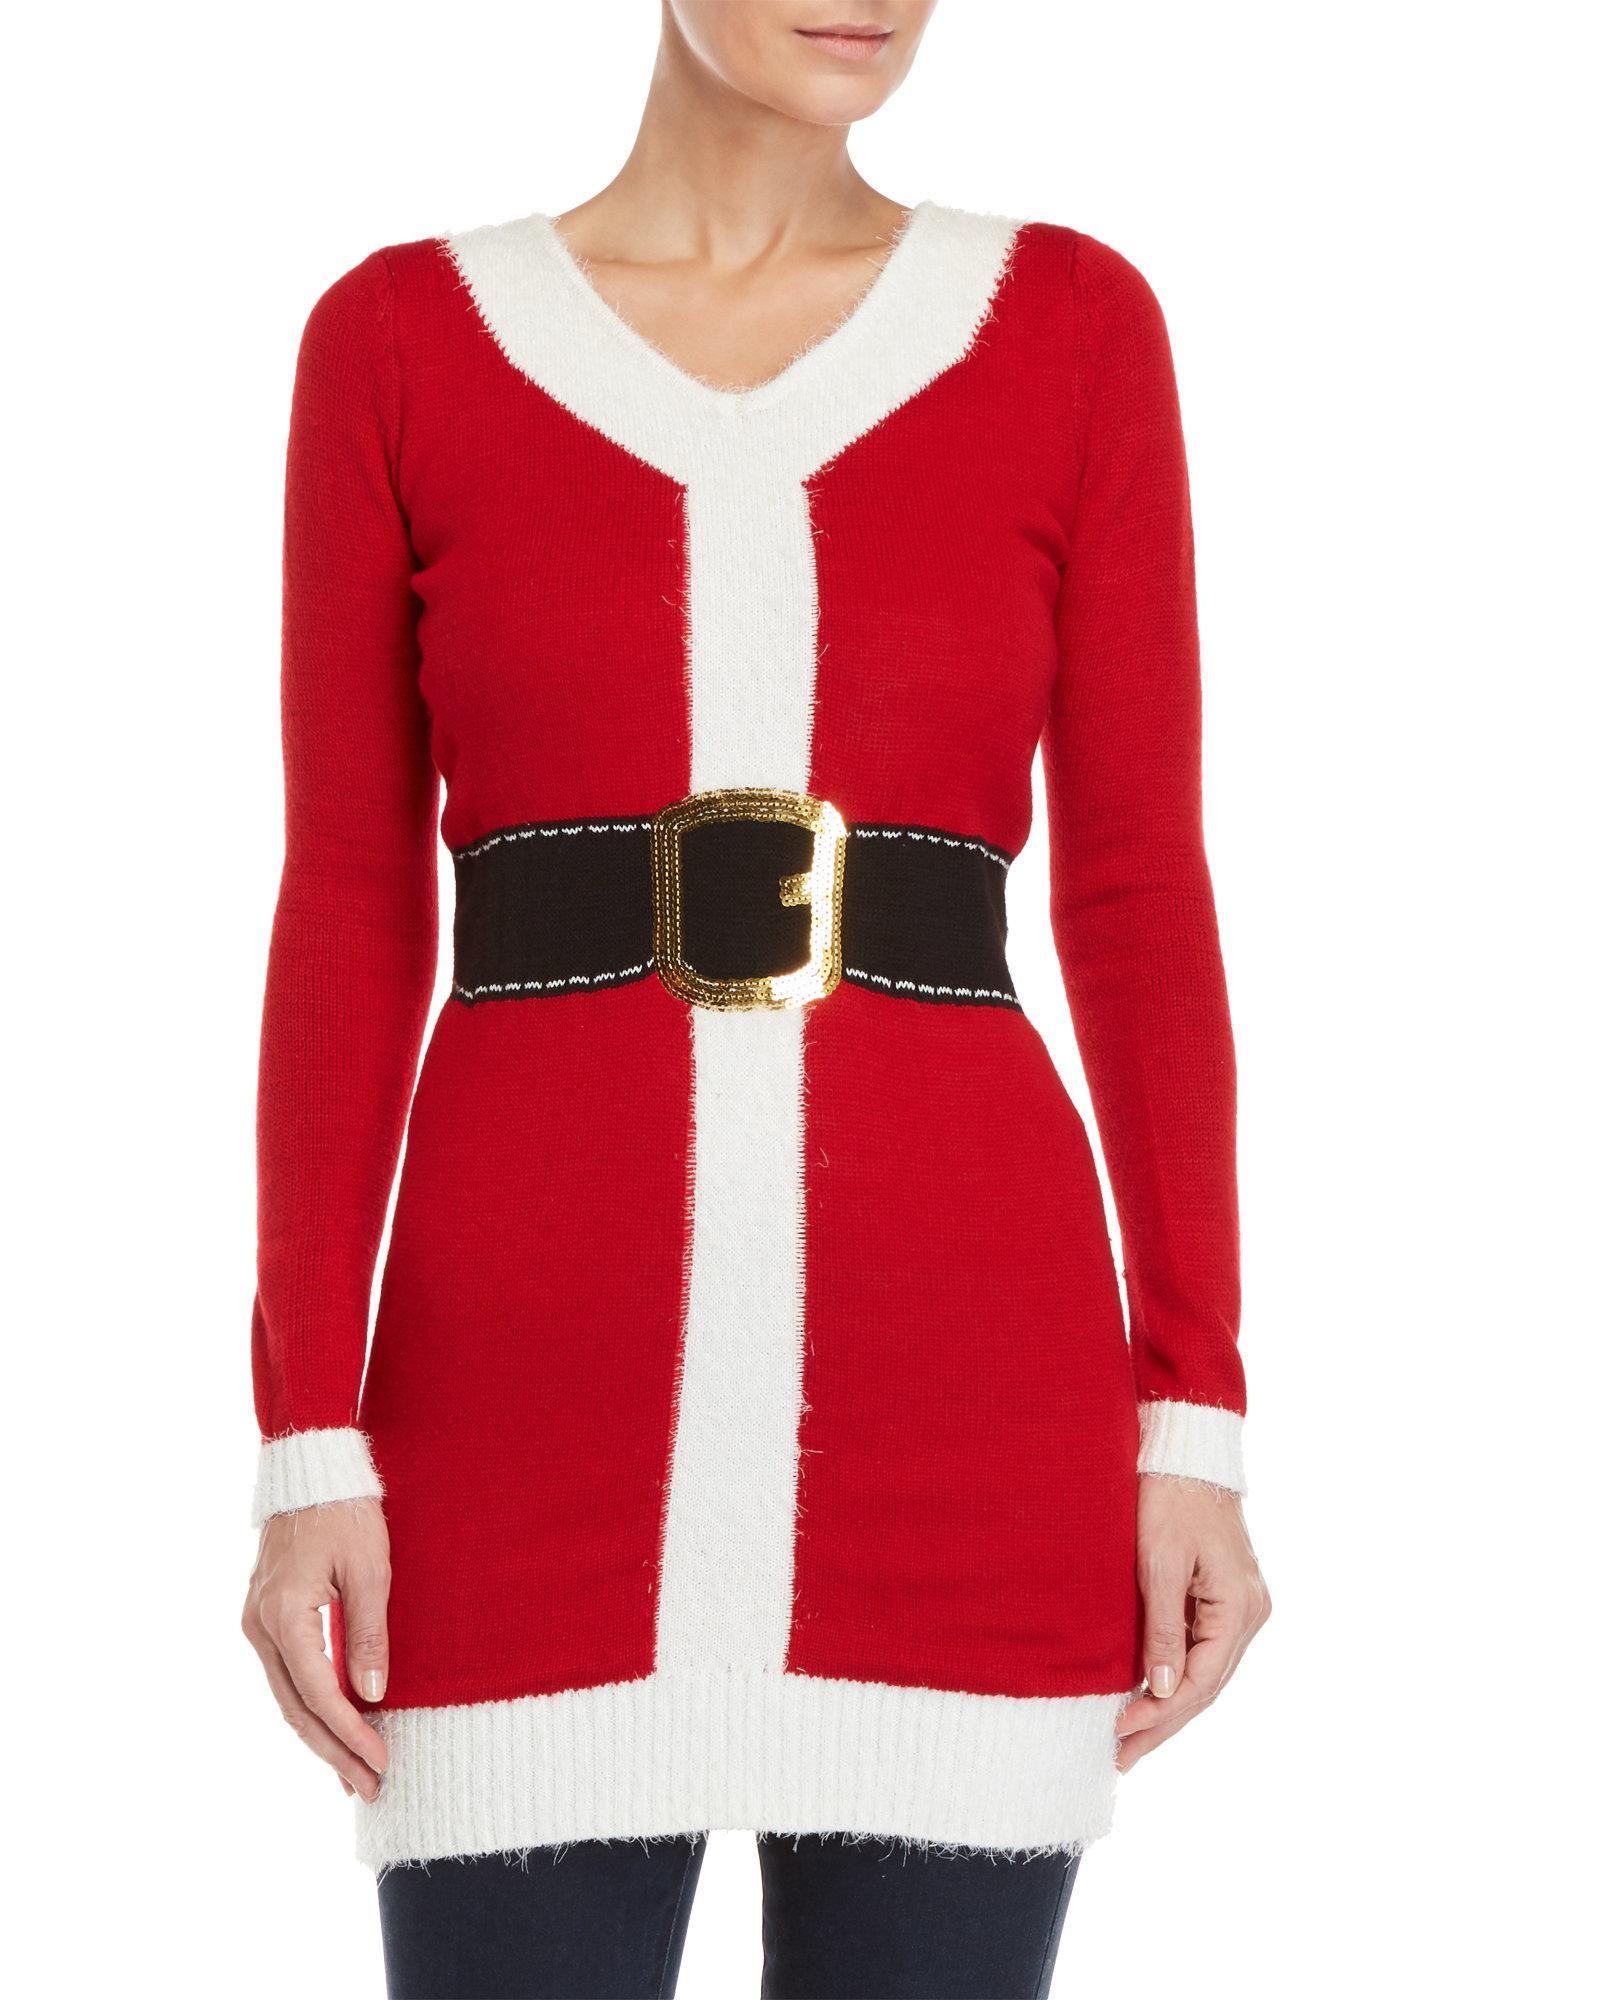 bebc41696a78d Love By Design Santa Ugly Christmas Sweater Dress in Red - Lyst